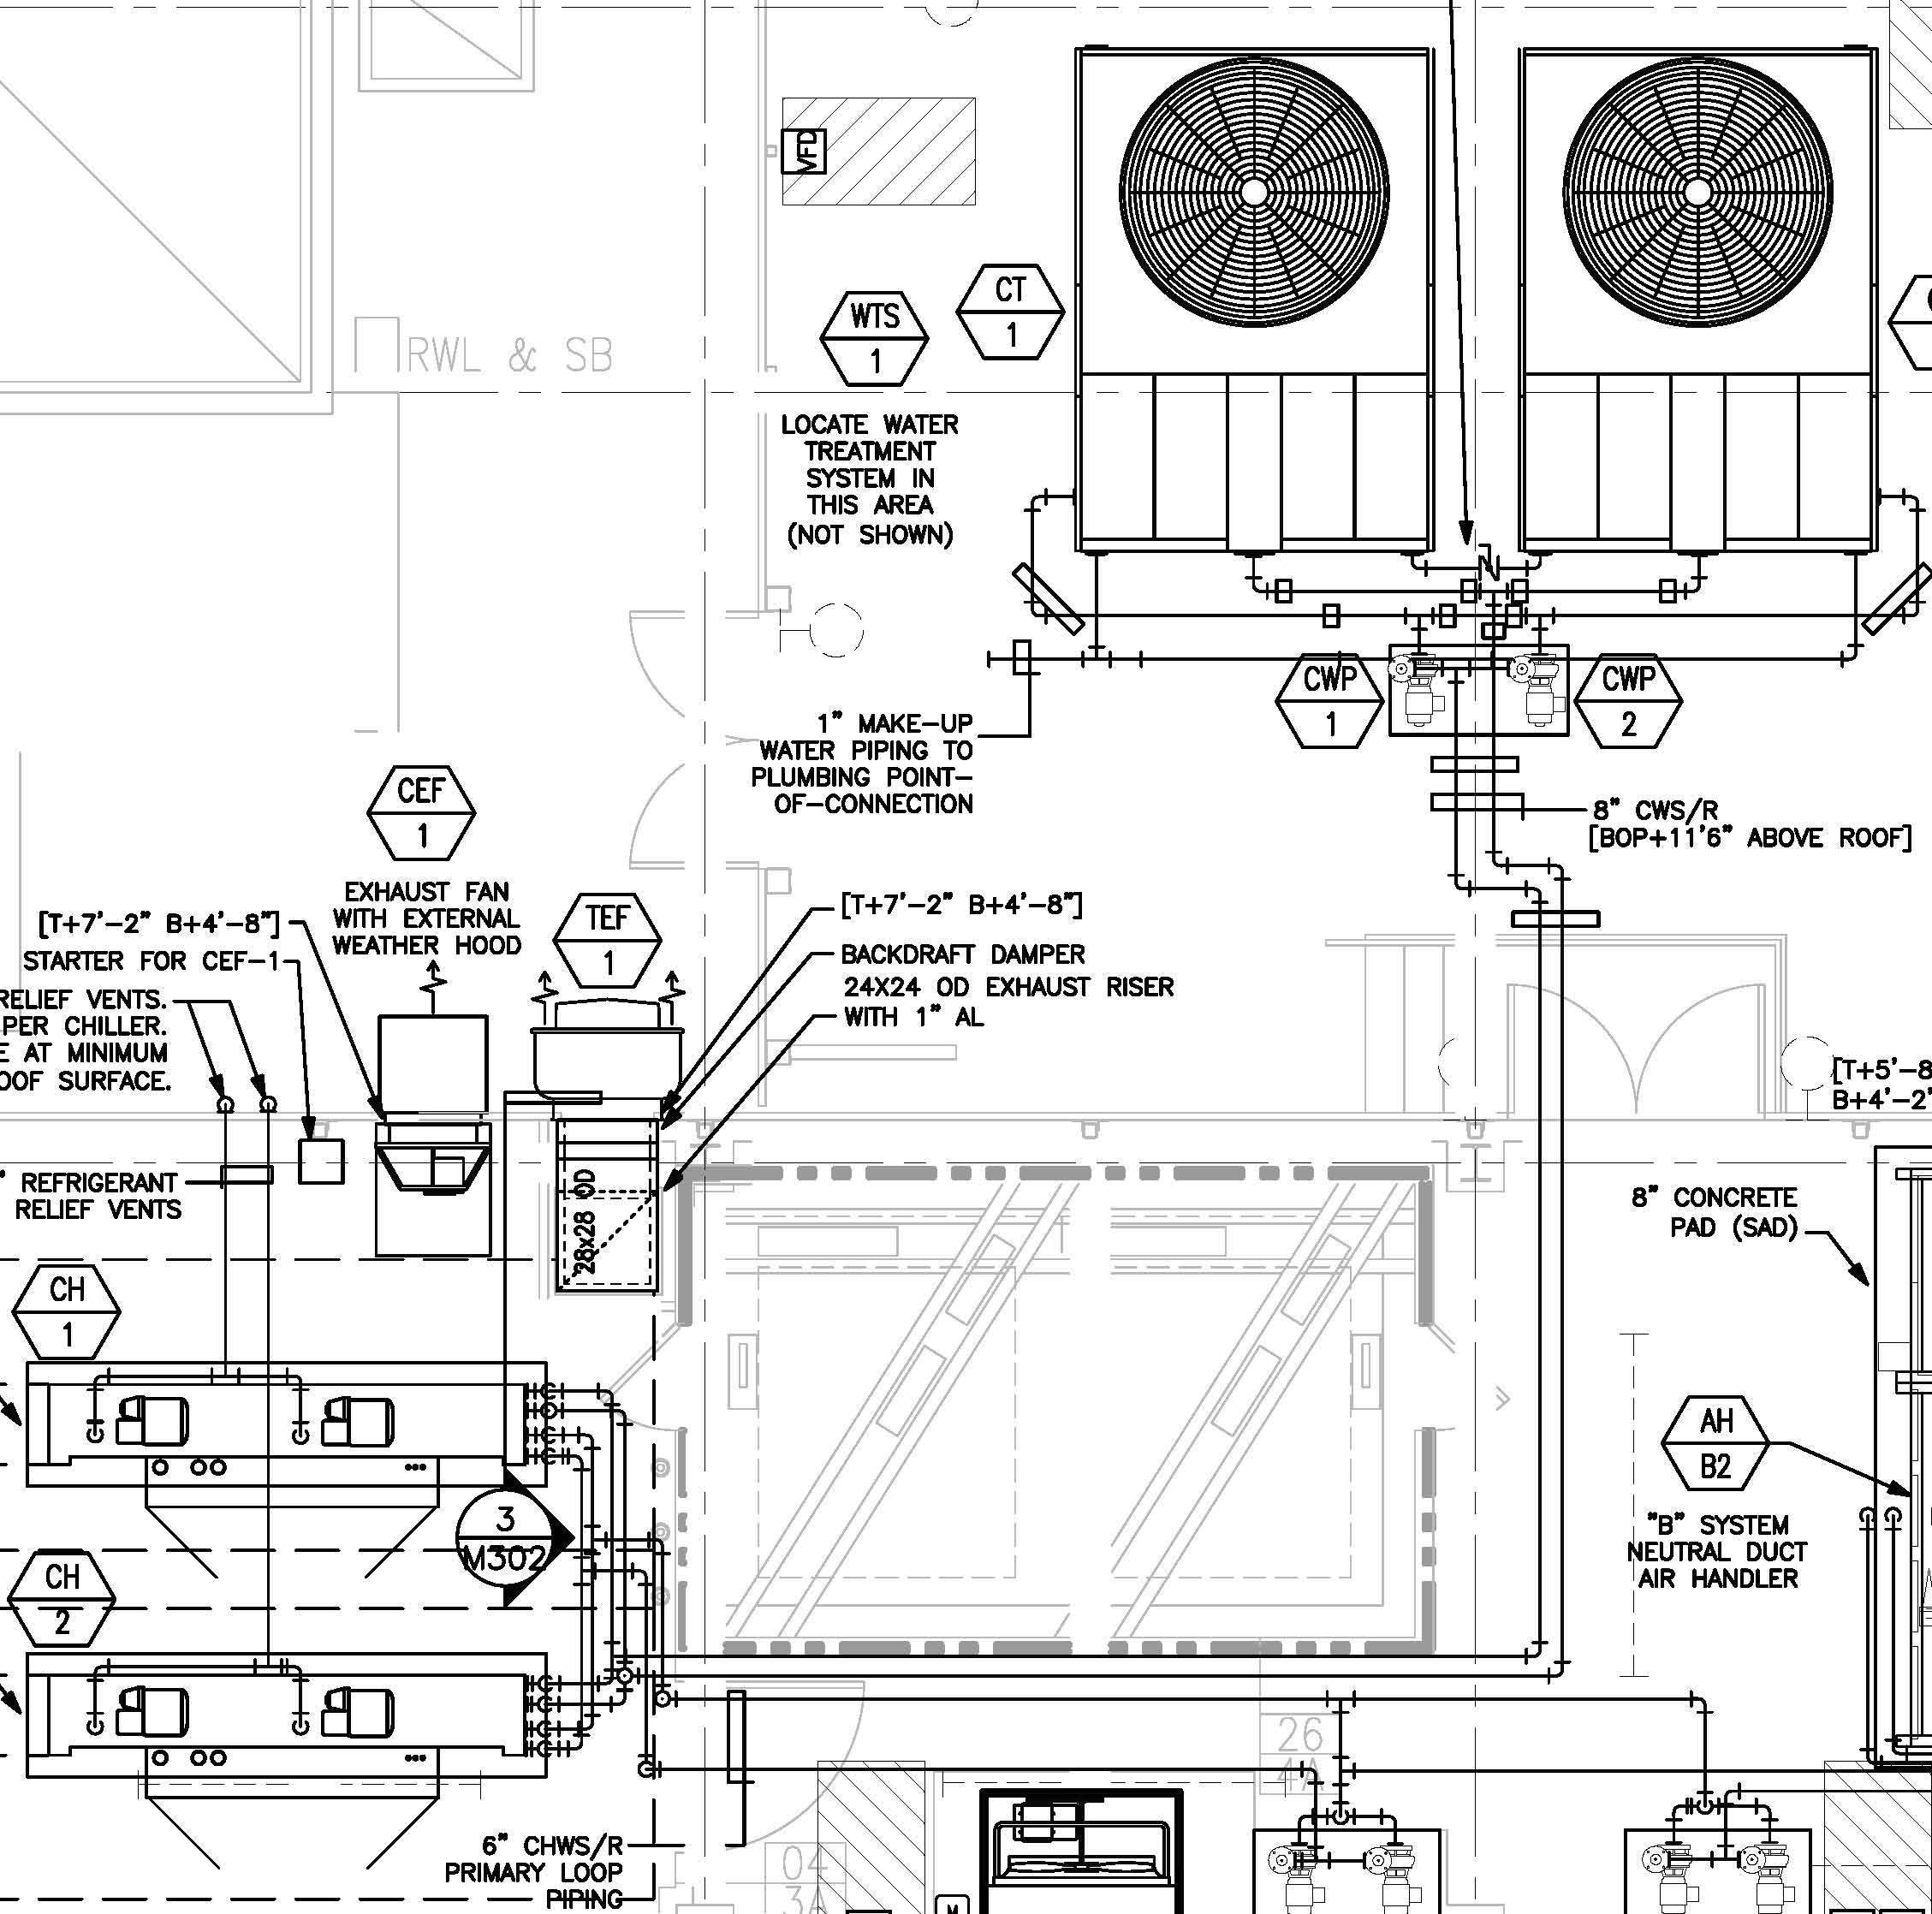 small resolution of condensing unit diagram chiller systems wiring diagram for youchiller wiring diagram 5